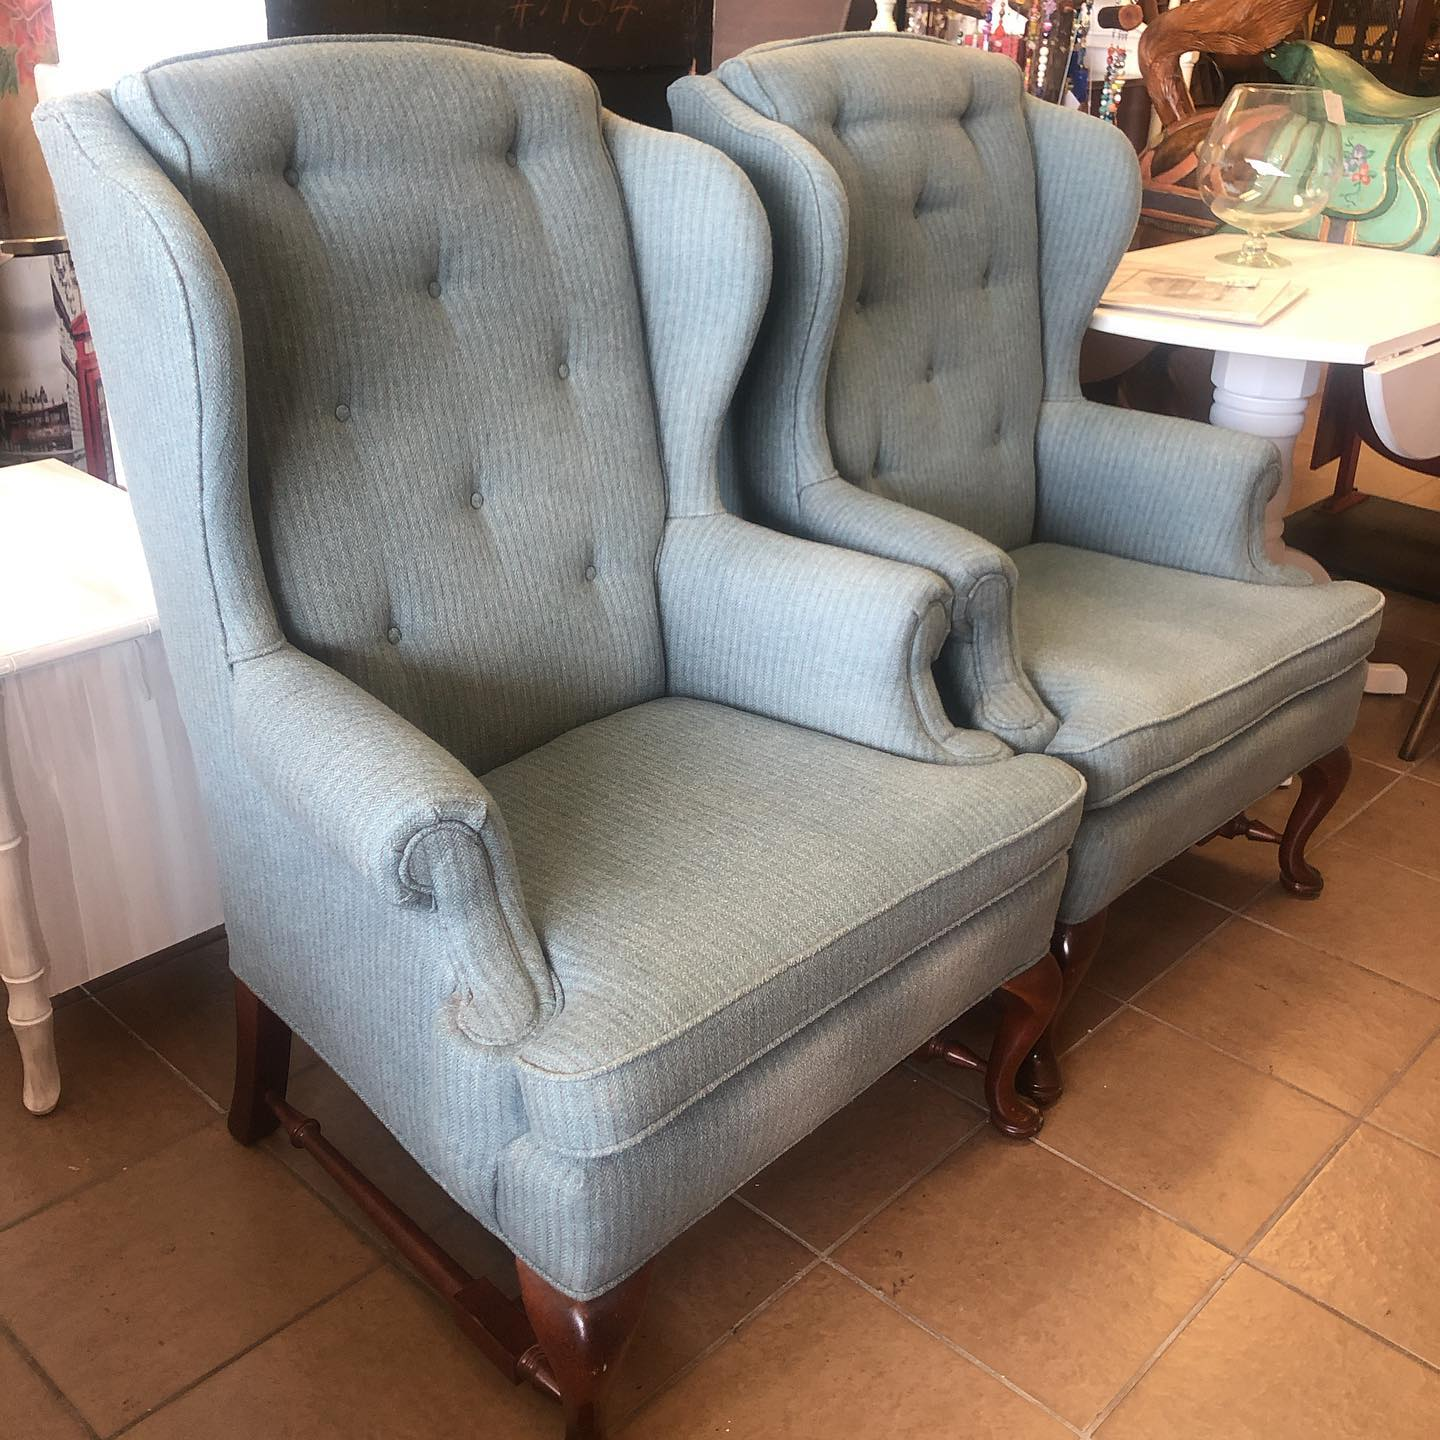 Pair Ethan Allen blue-grey winged backs.